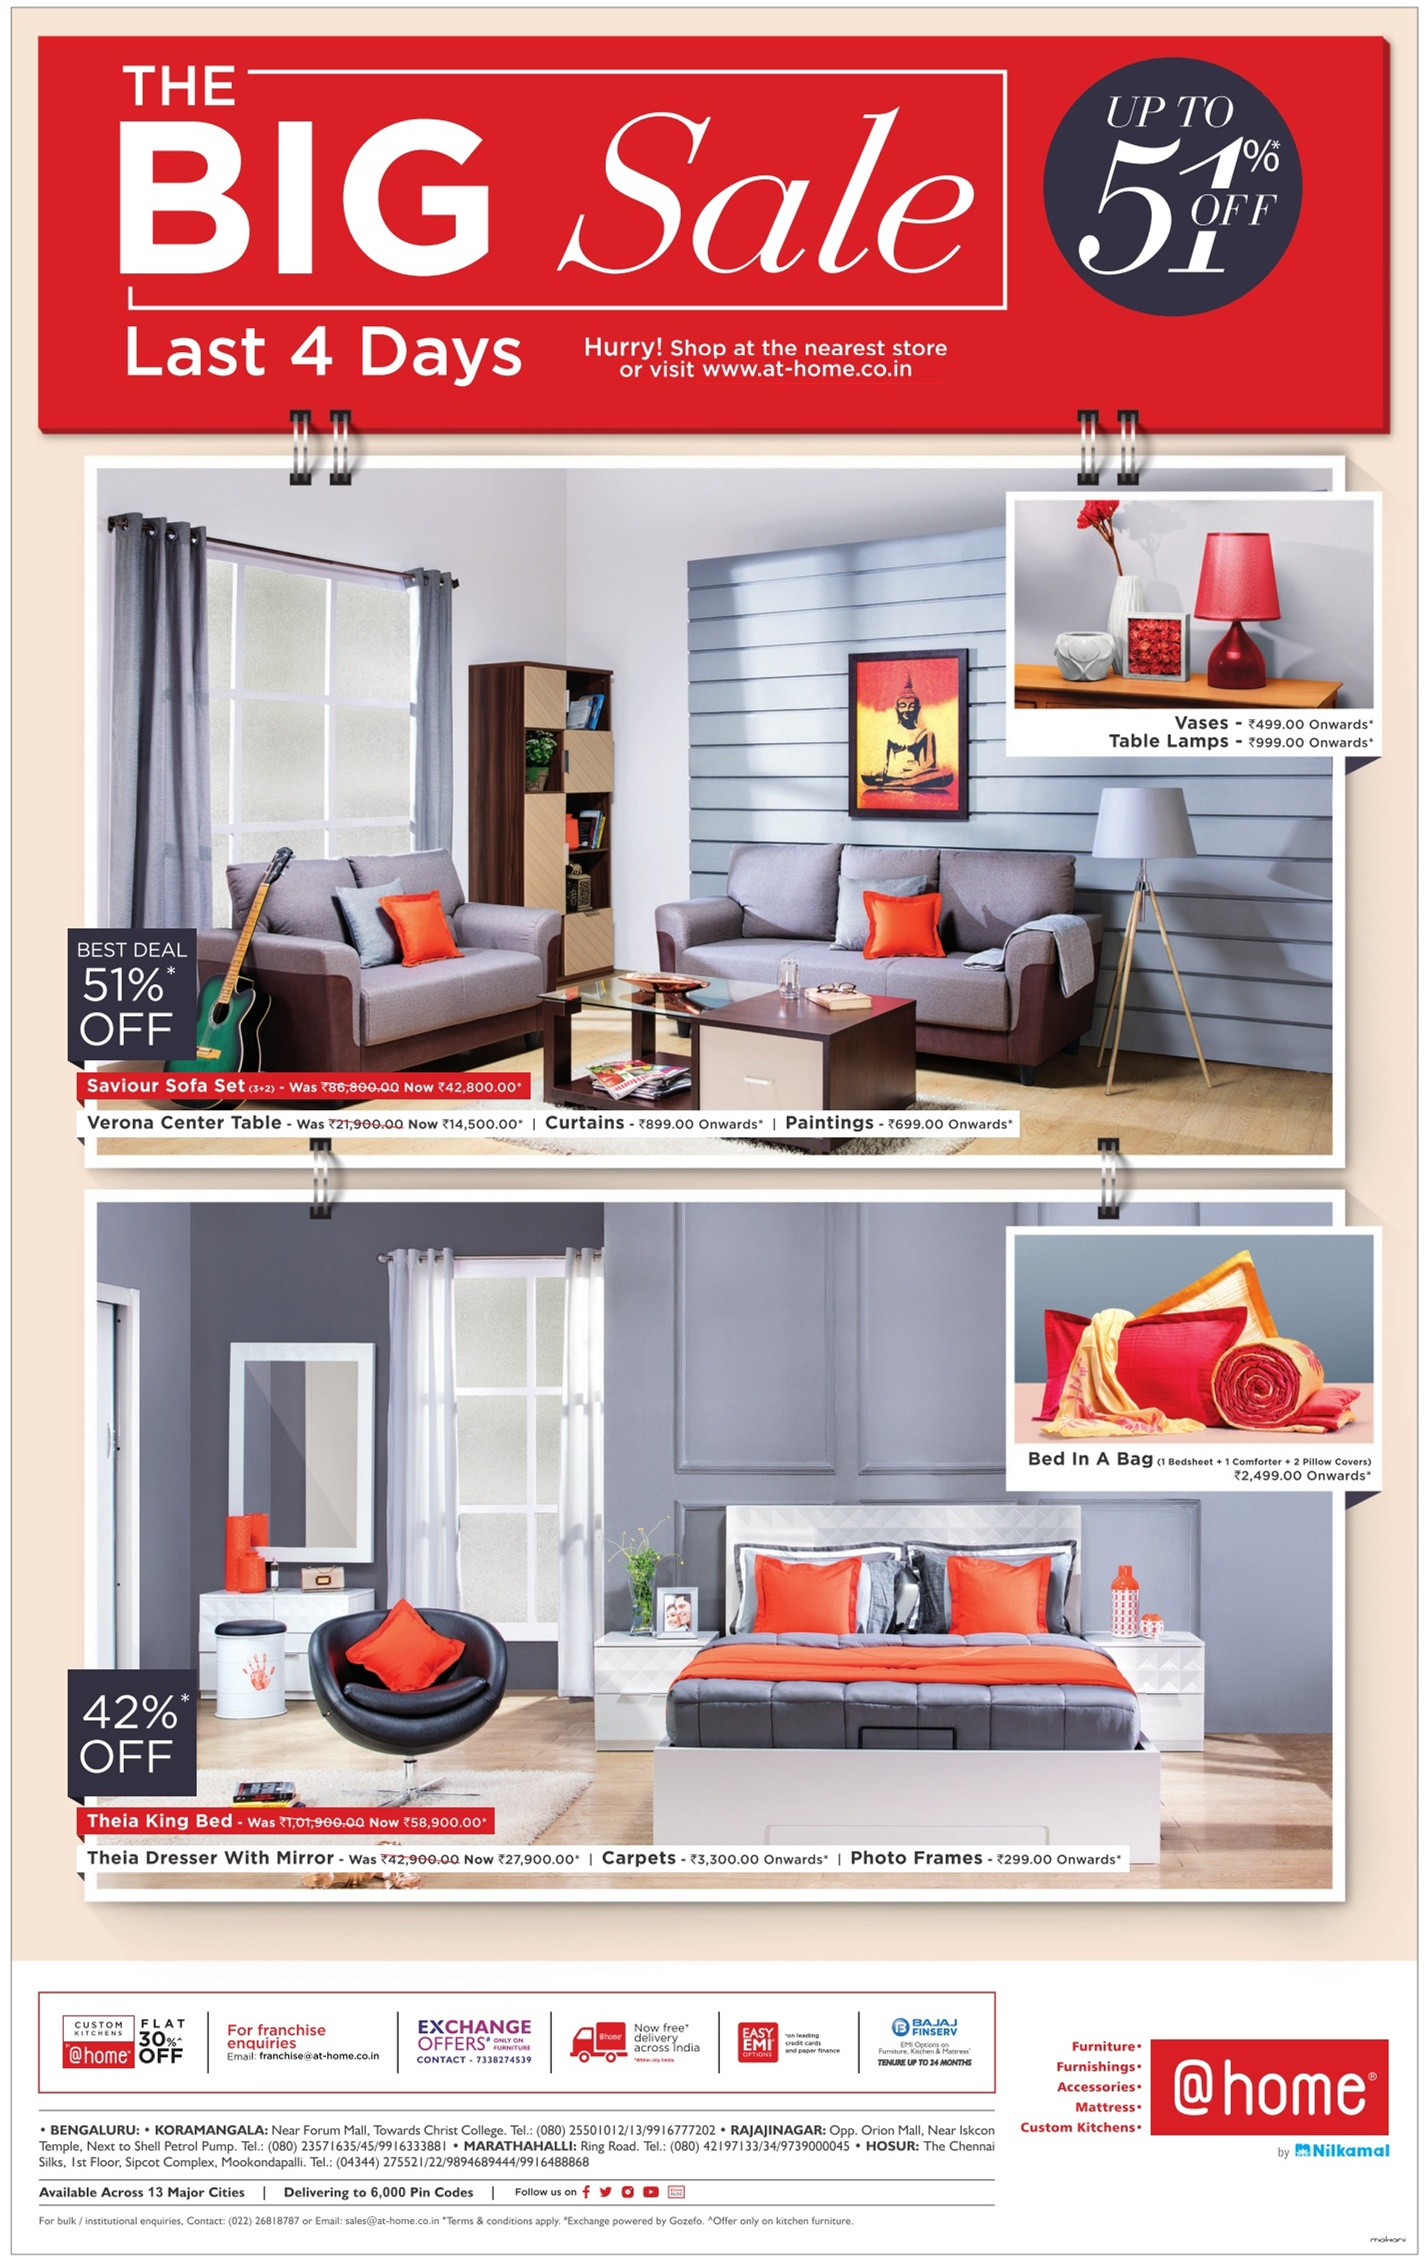 Home Furniture The Big Sale Last 4 Days Ad Advert Gallery